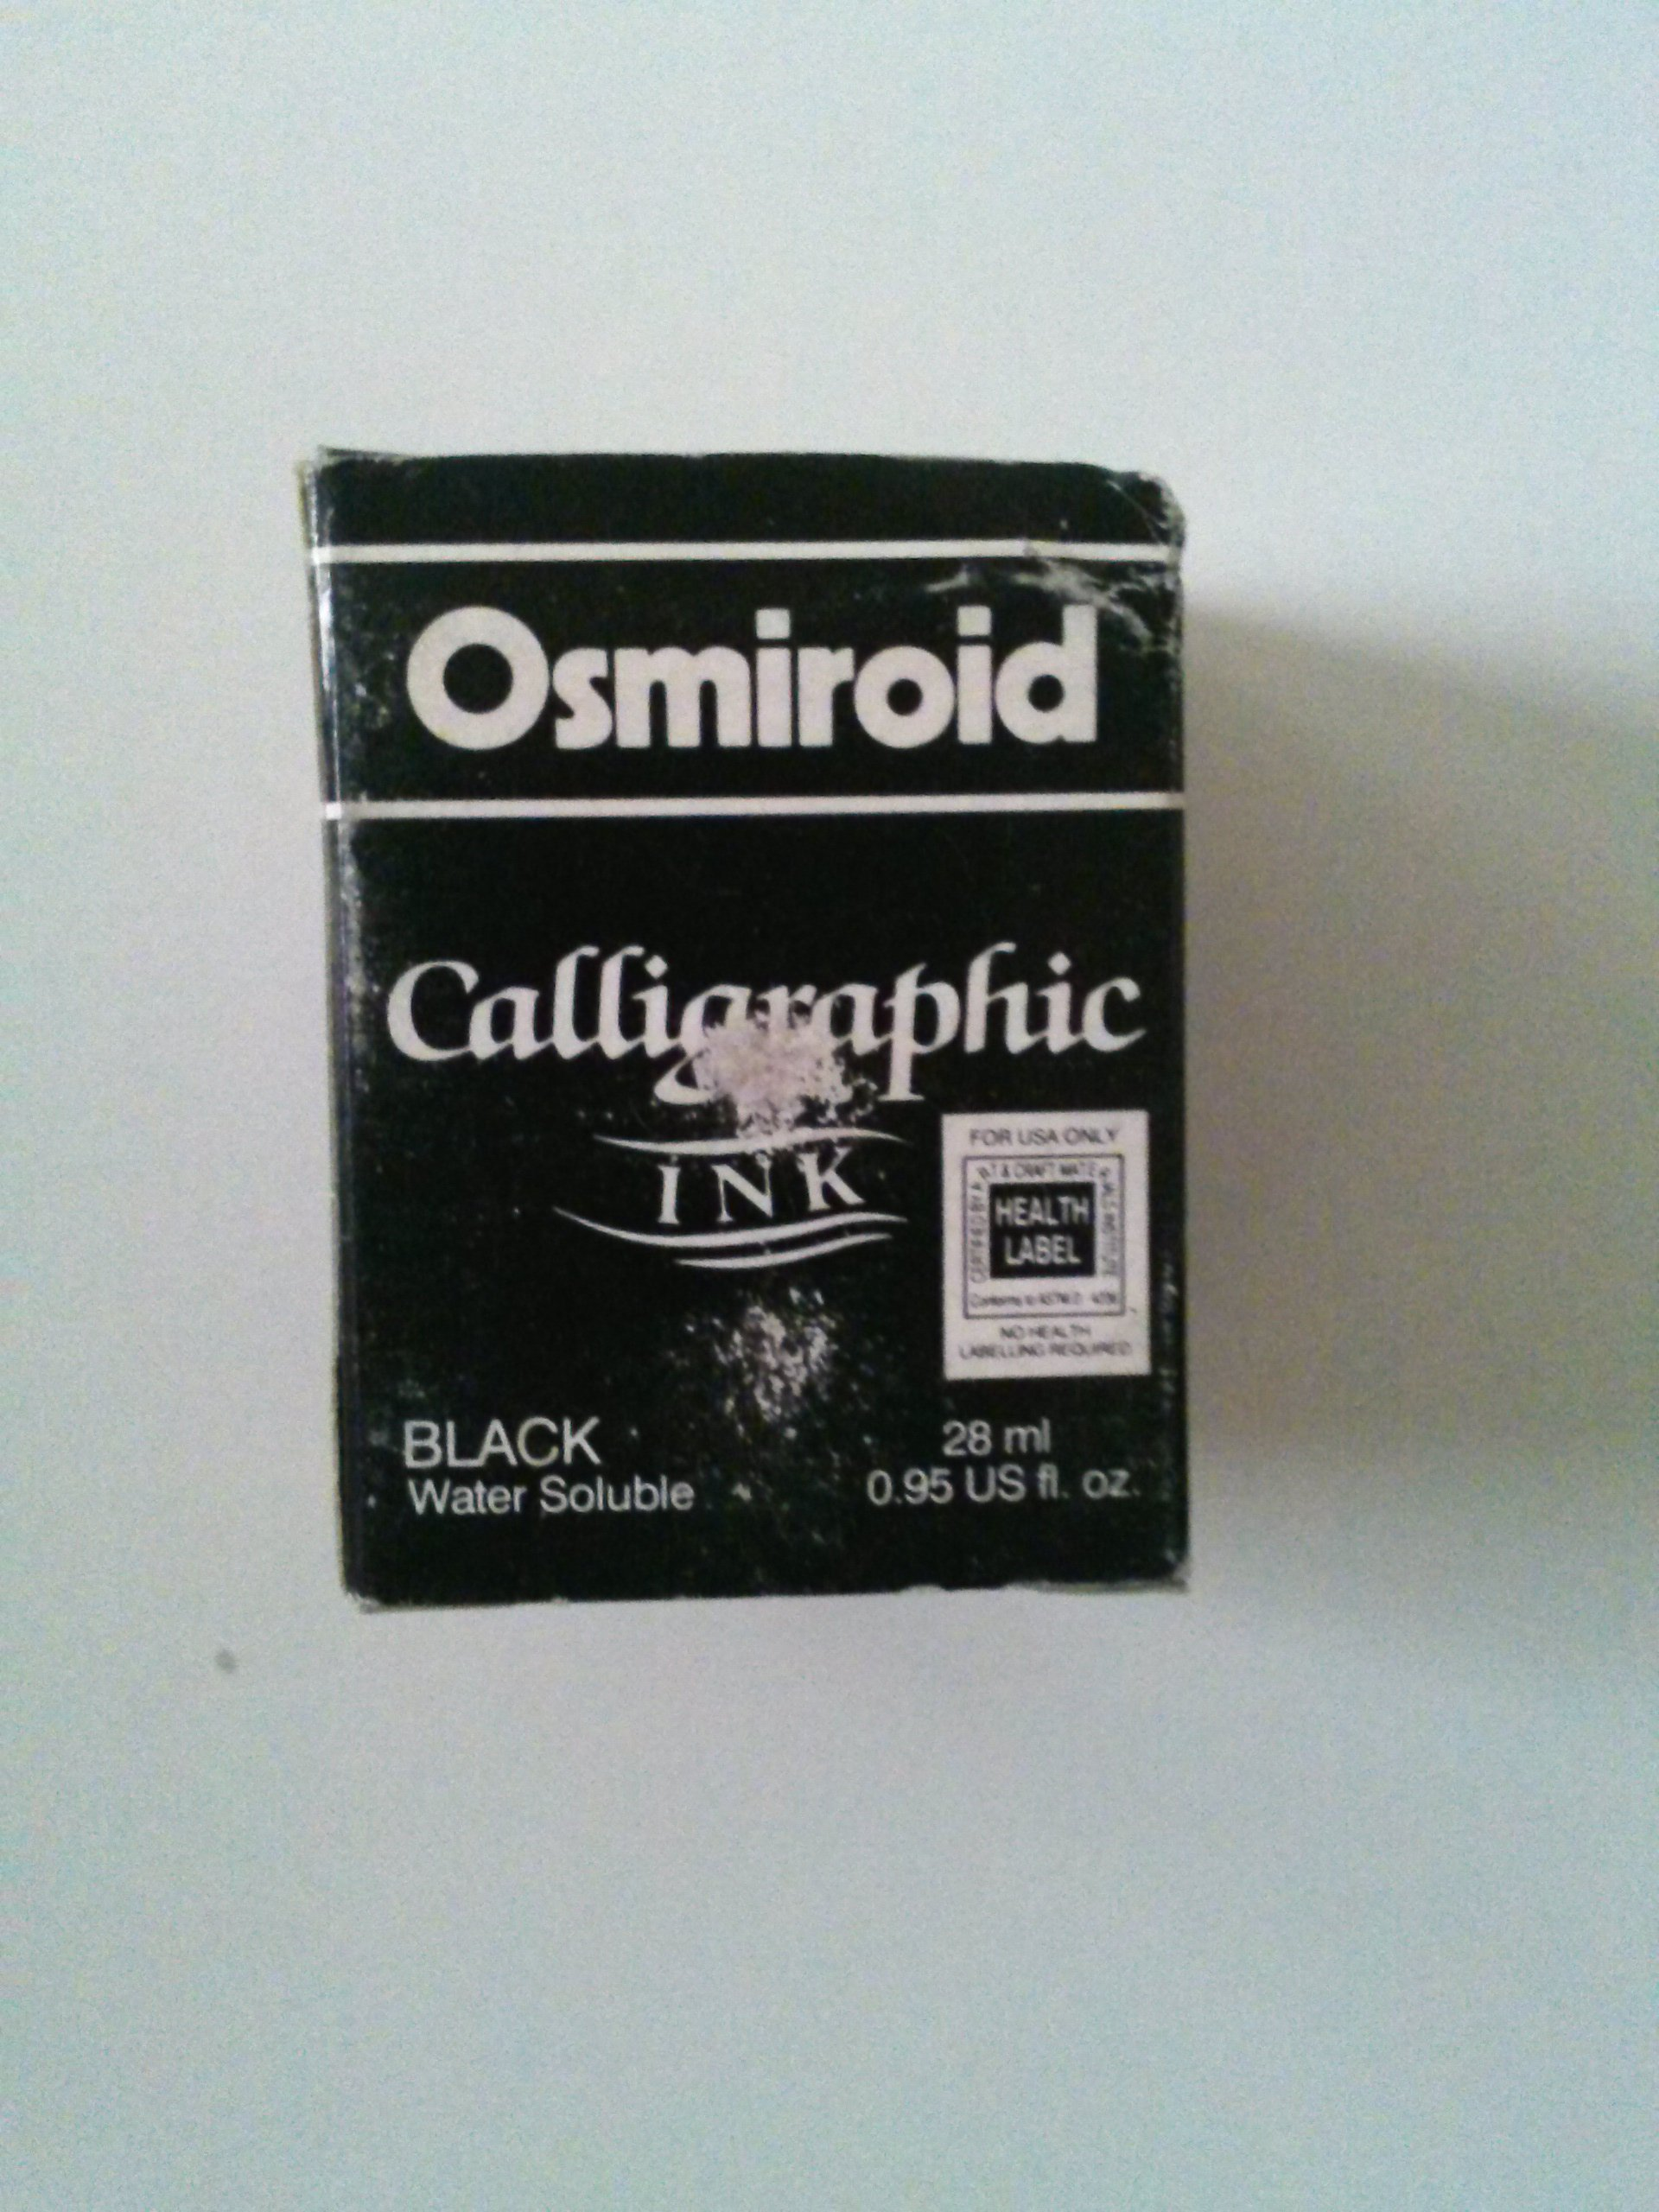 Osmiroid 19671 Calligraphy Ink Black Water Soluble 28 ml 0.95 fl. oz (Vintage Product)